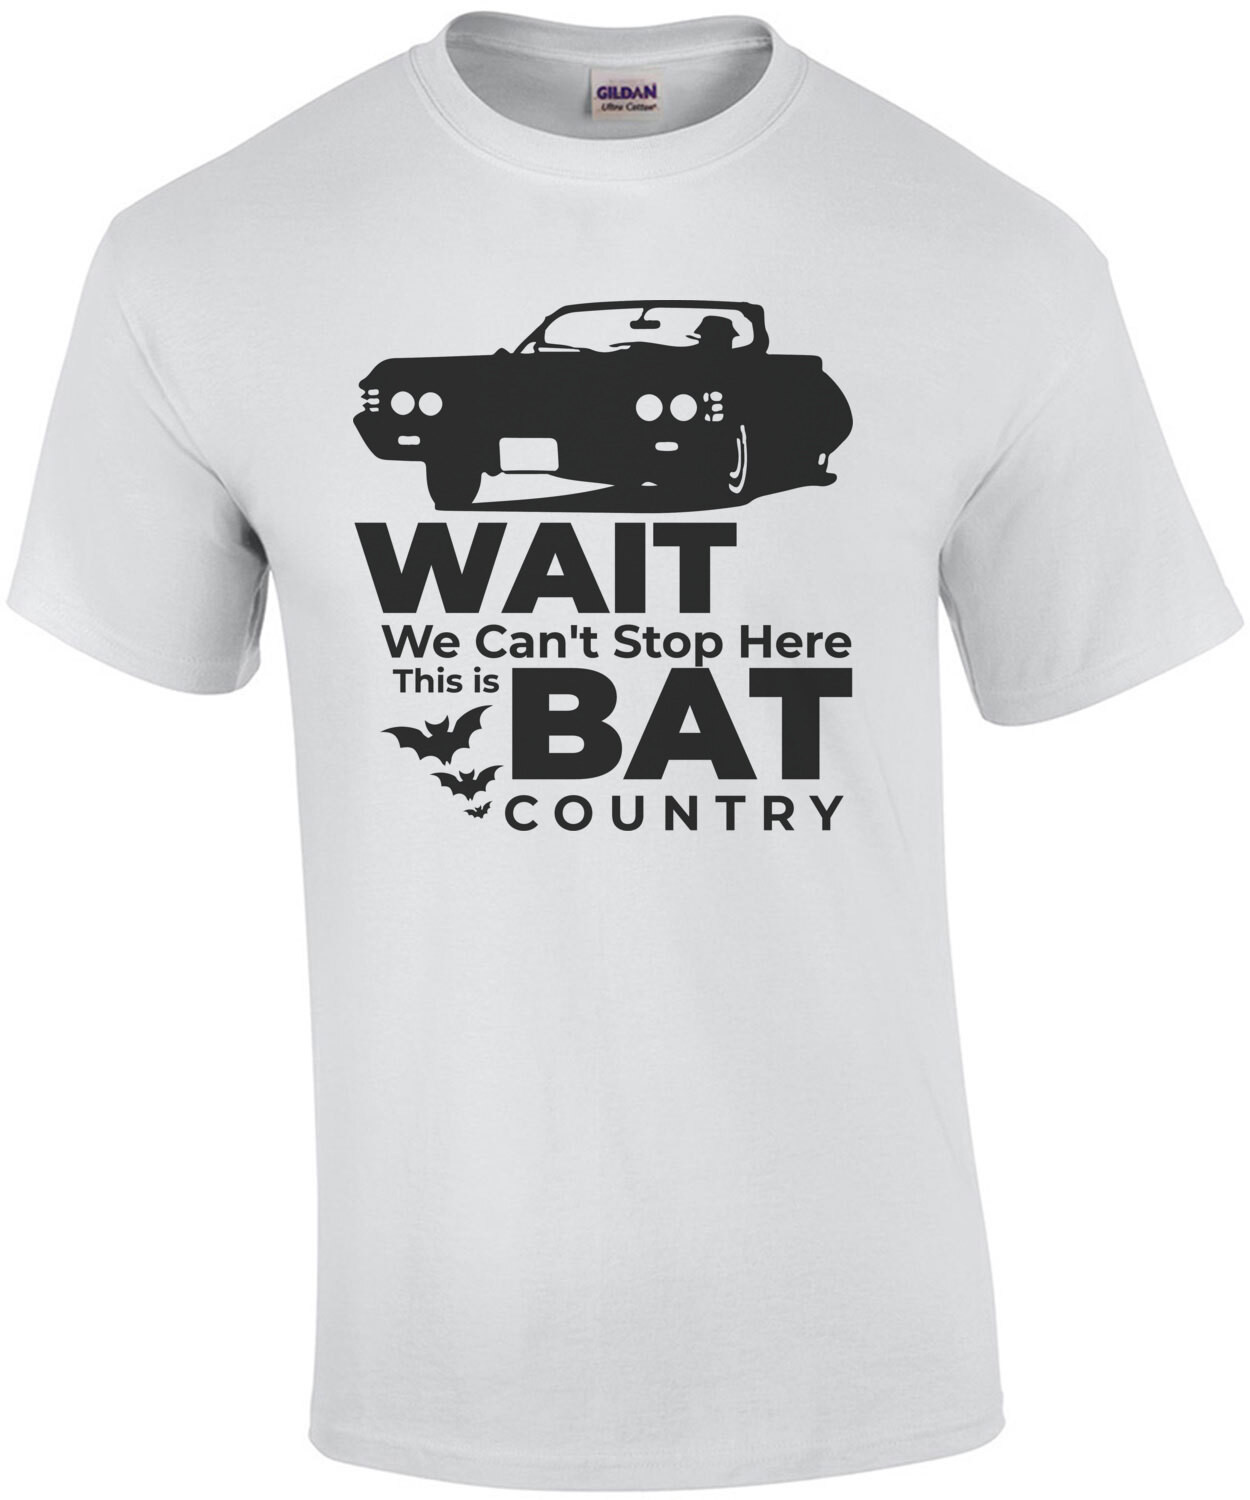 Wait - We can't stop here this is bat country - Fear and loathing in Las Vegas - 90's T-Shirt